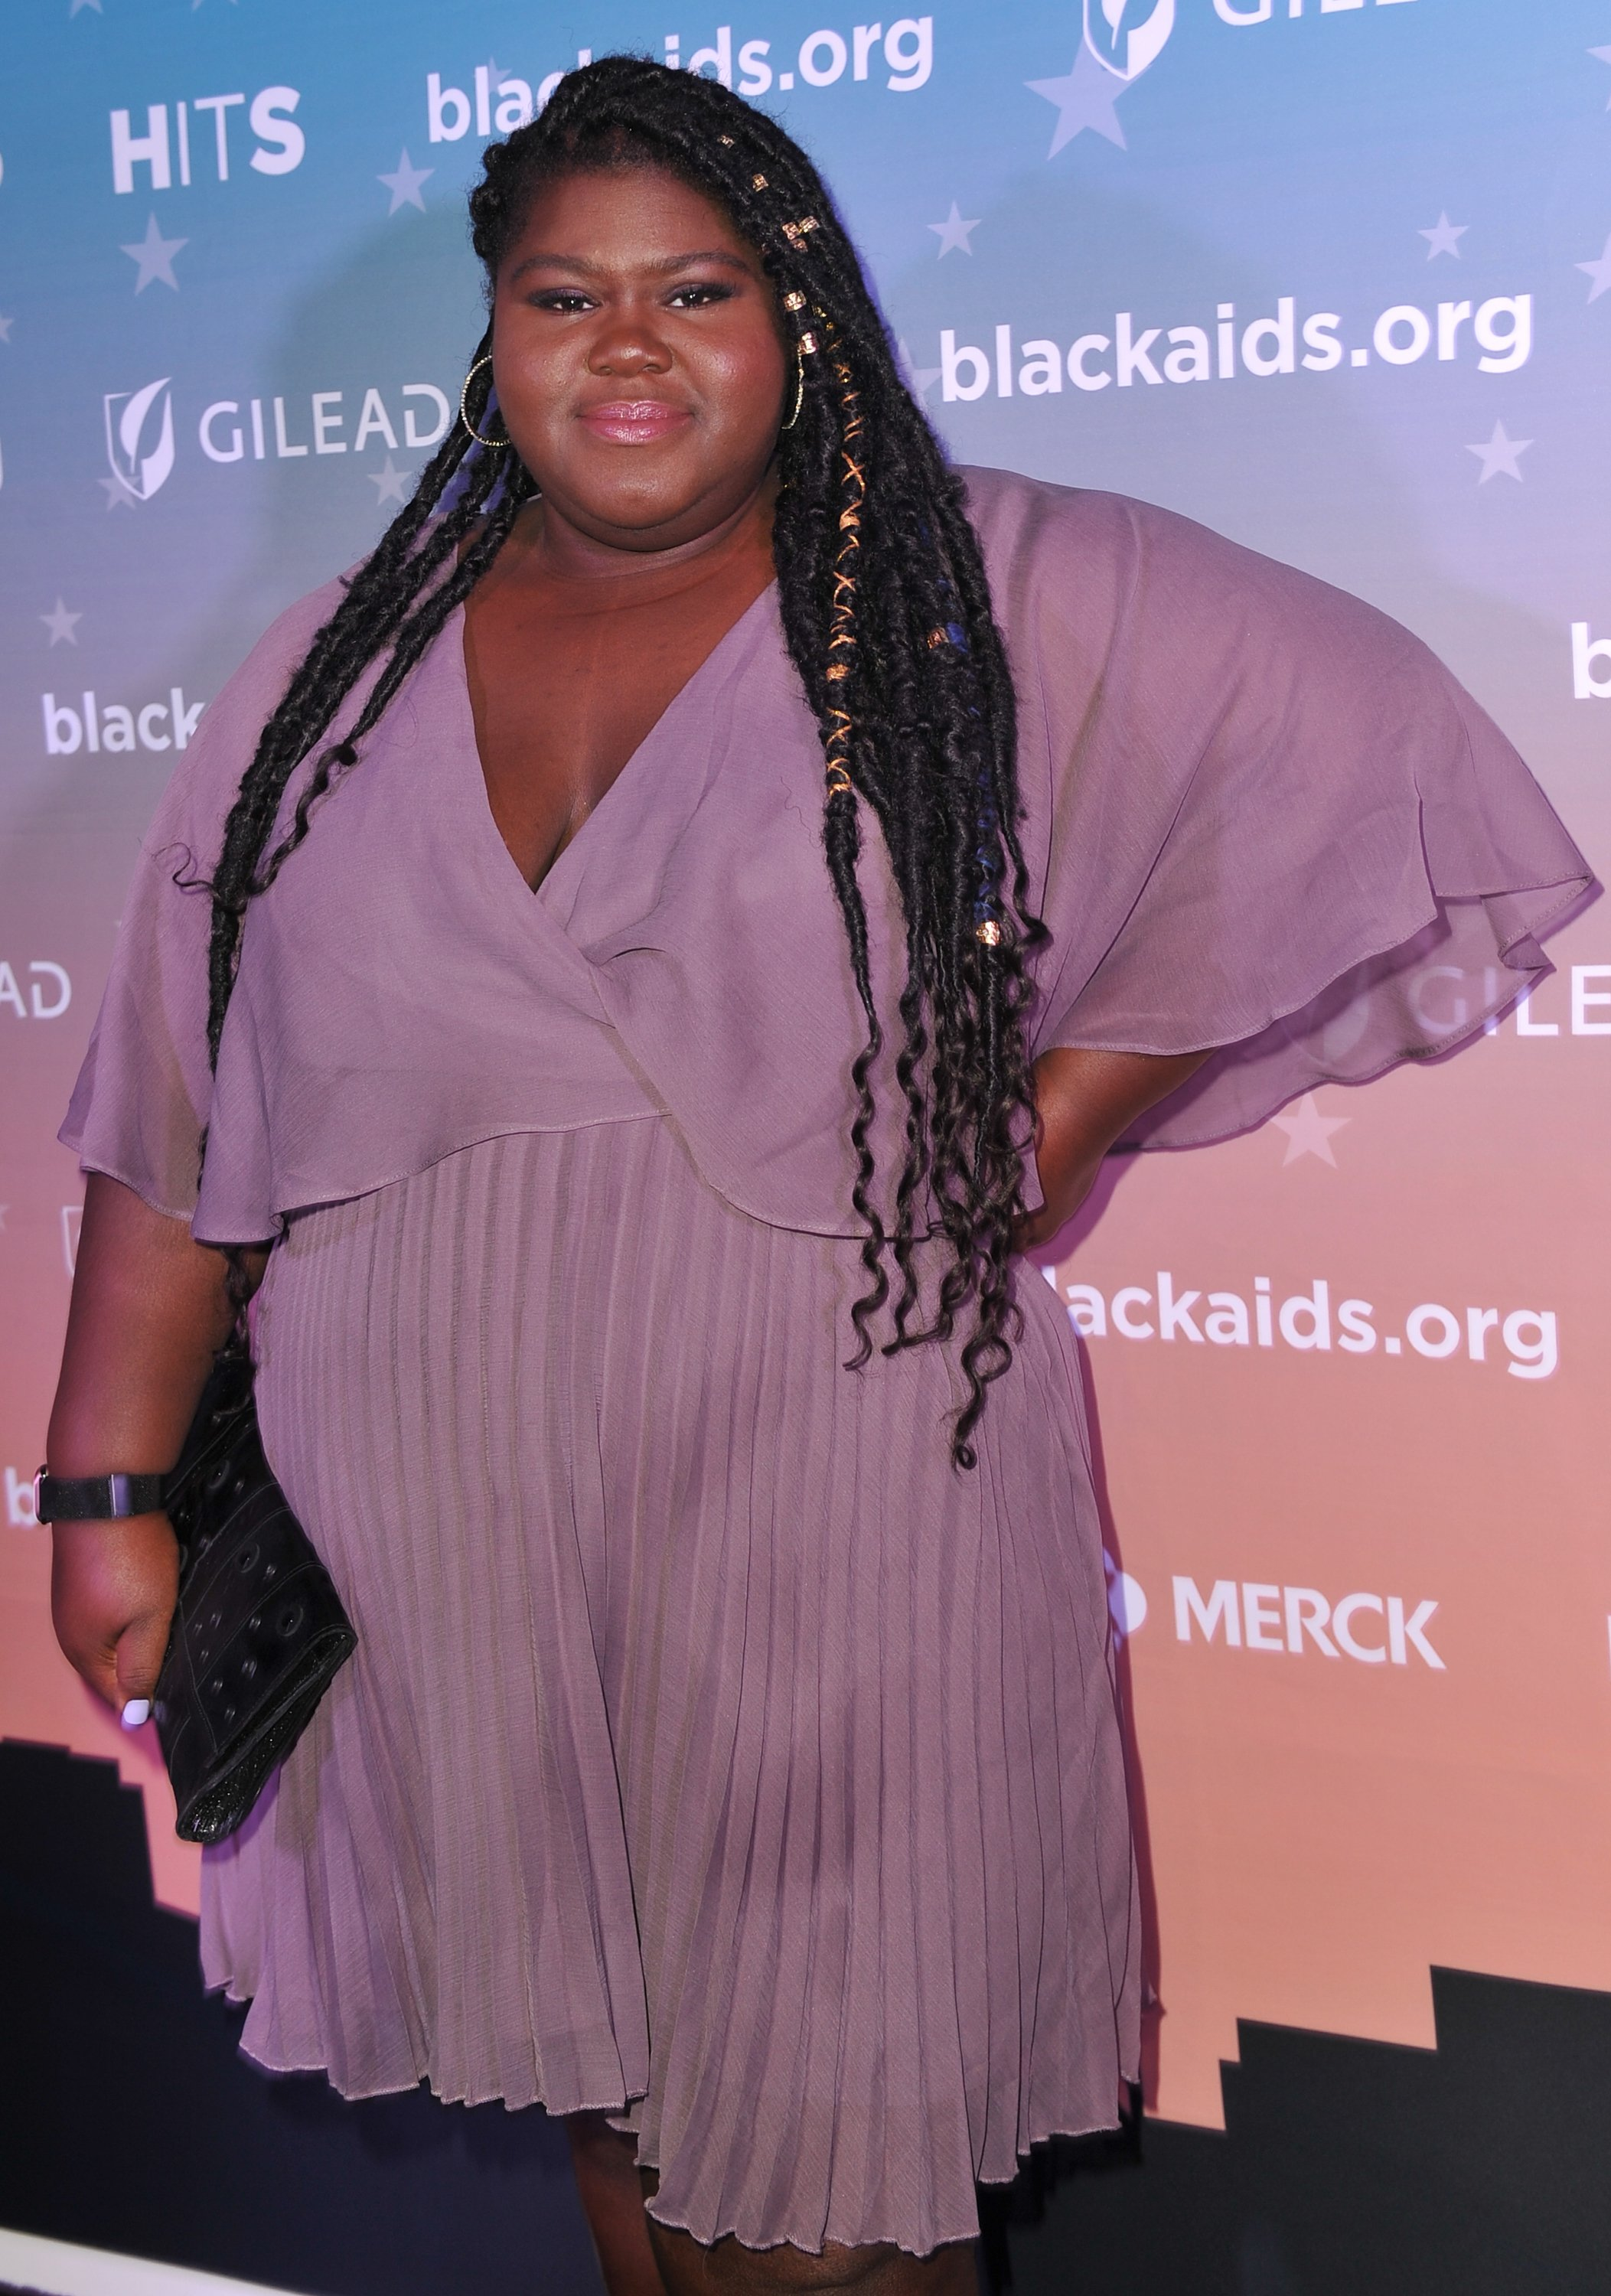 Gabourey Sidibe at the Black AIDS Institute's 2018 Heroes in The Struggle Gala, 2018 in Los Angeles, California   Source: Getty Images